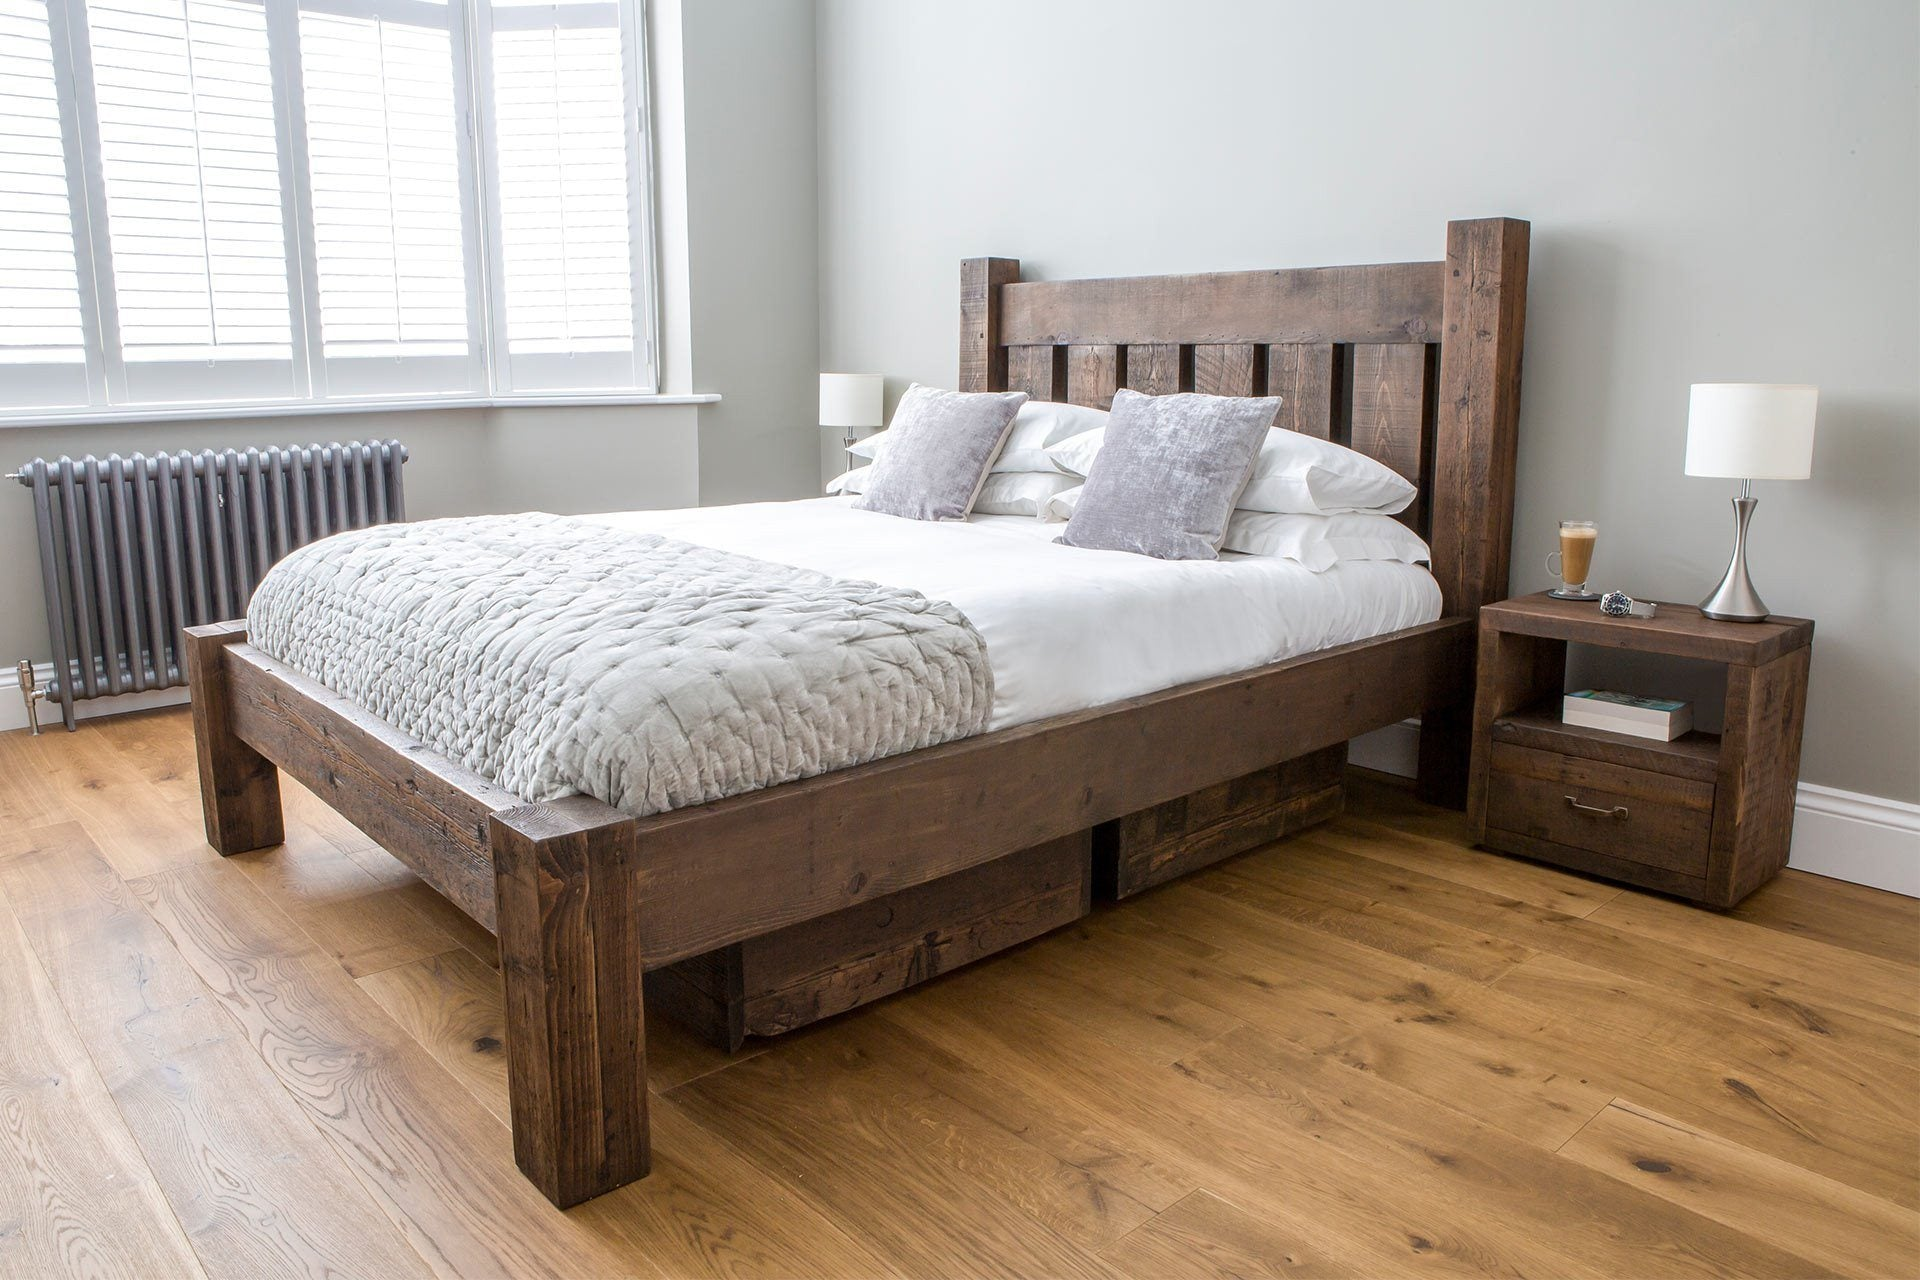 e368bdffbd Classic Kingsize Bed With Branson 1 Drawer Bedsides & Hudson Underbed  Storage (Sold Separately)